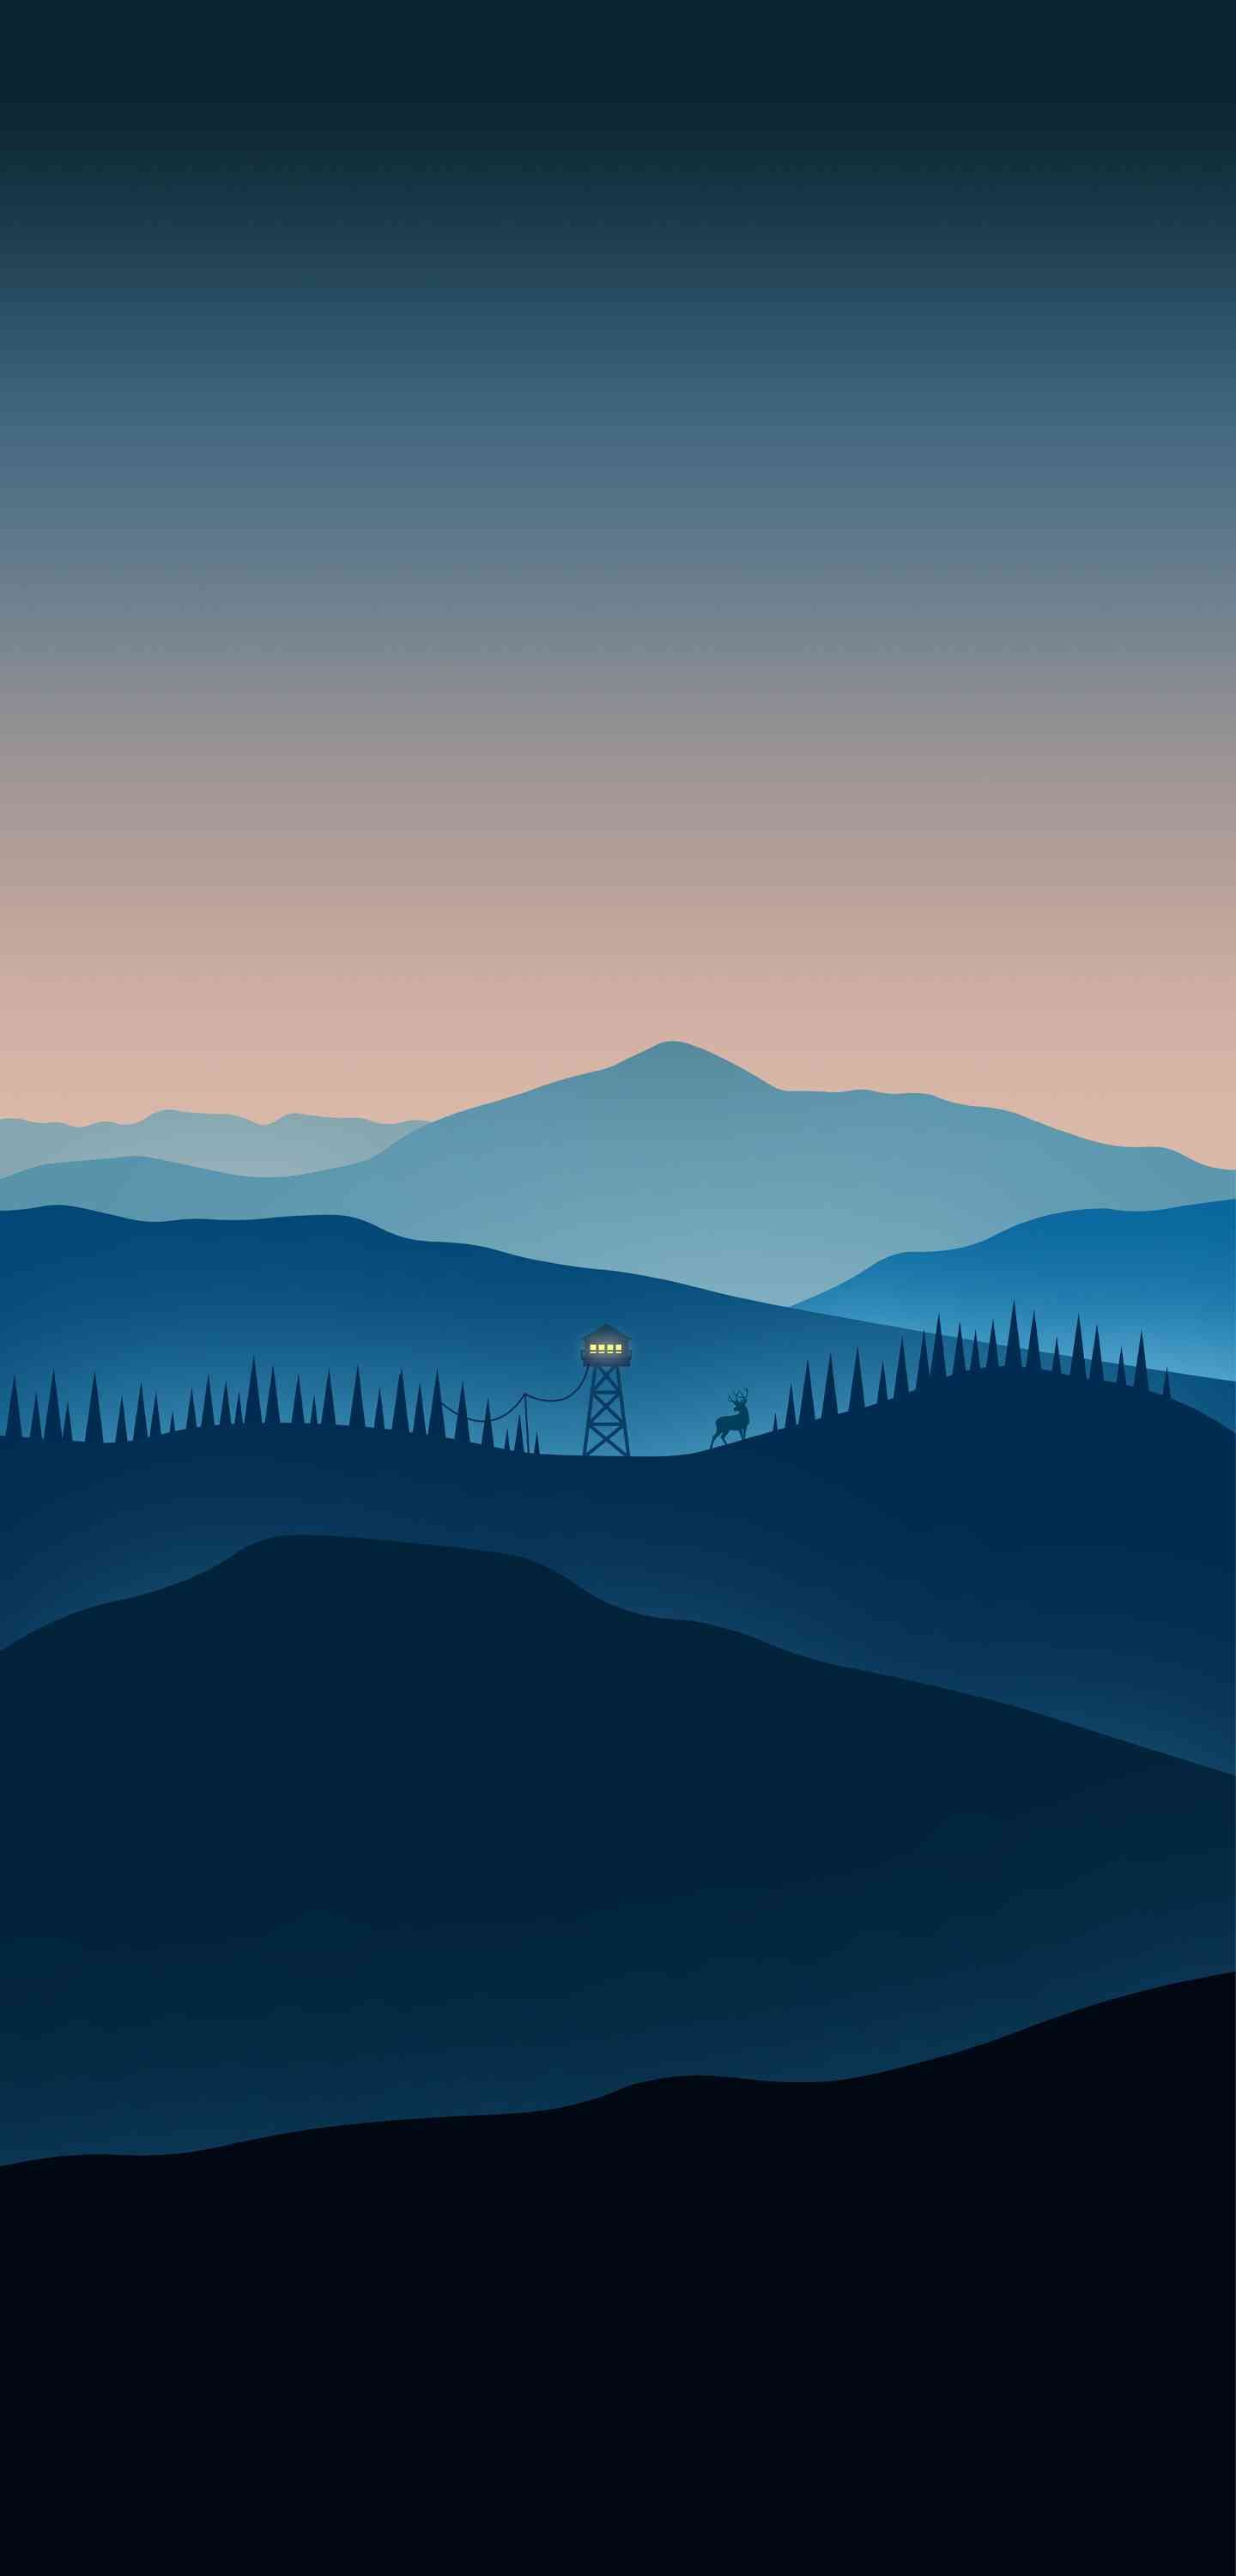 Firewatch Minimalistic Iphone Wallpaper Mkbhd Wallpapers Ipad Air Wallpaper Scenery Wallpaper